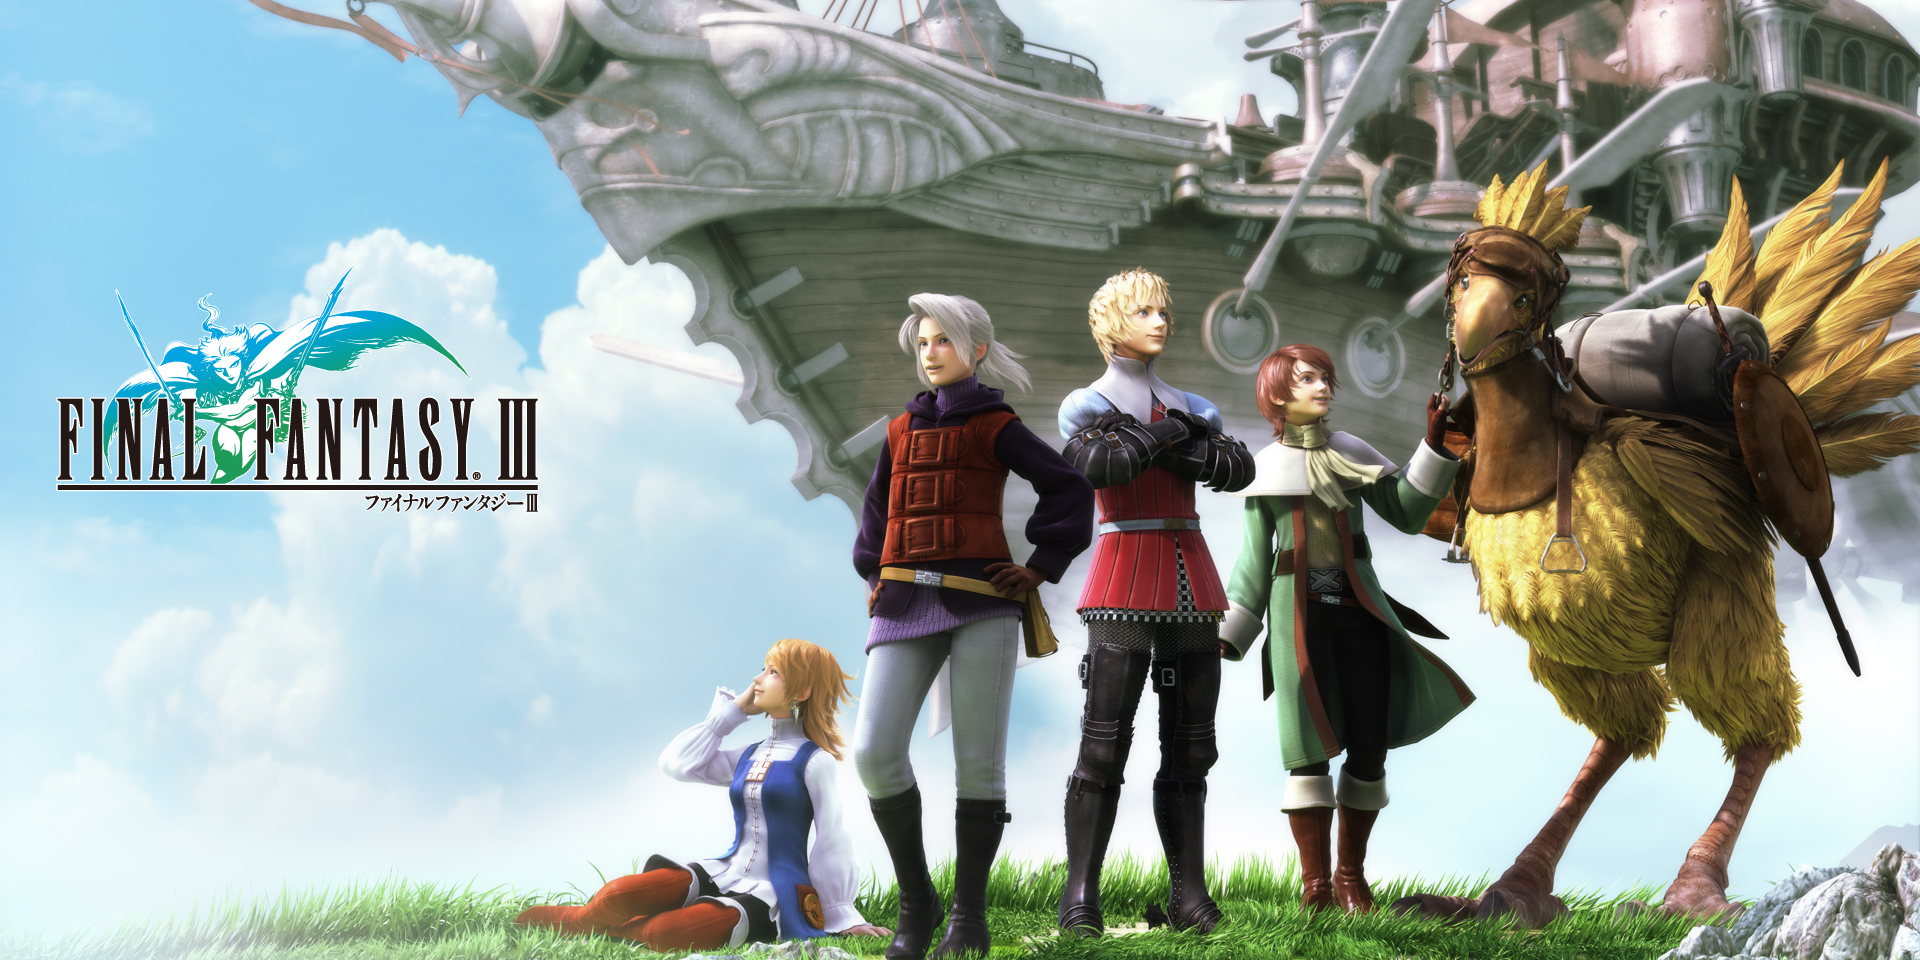 final-fantasy-iii-ios-sale-01